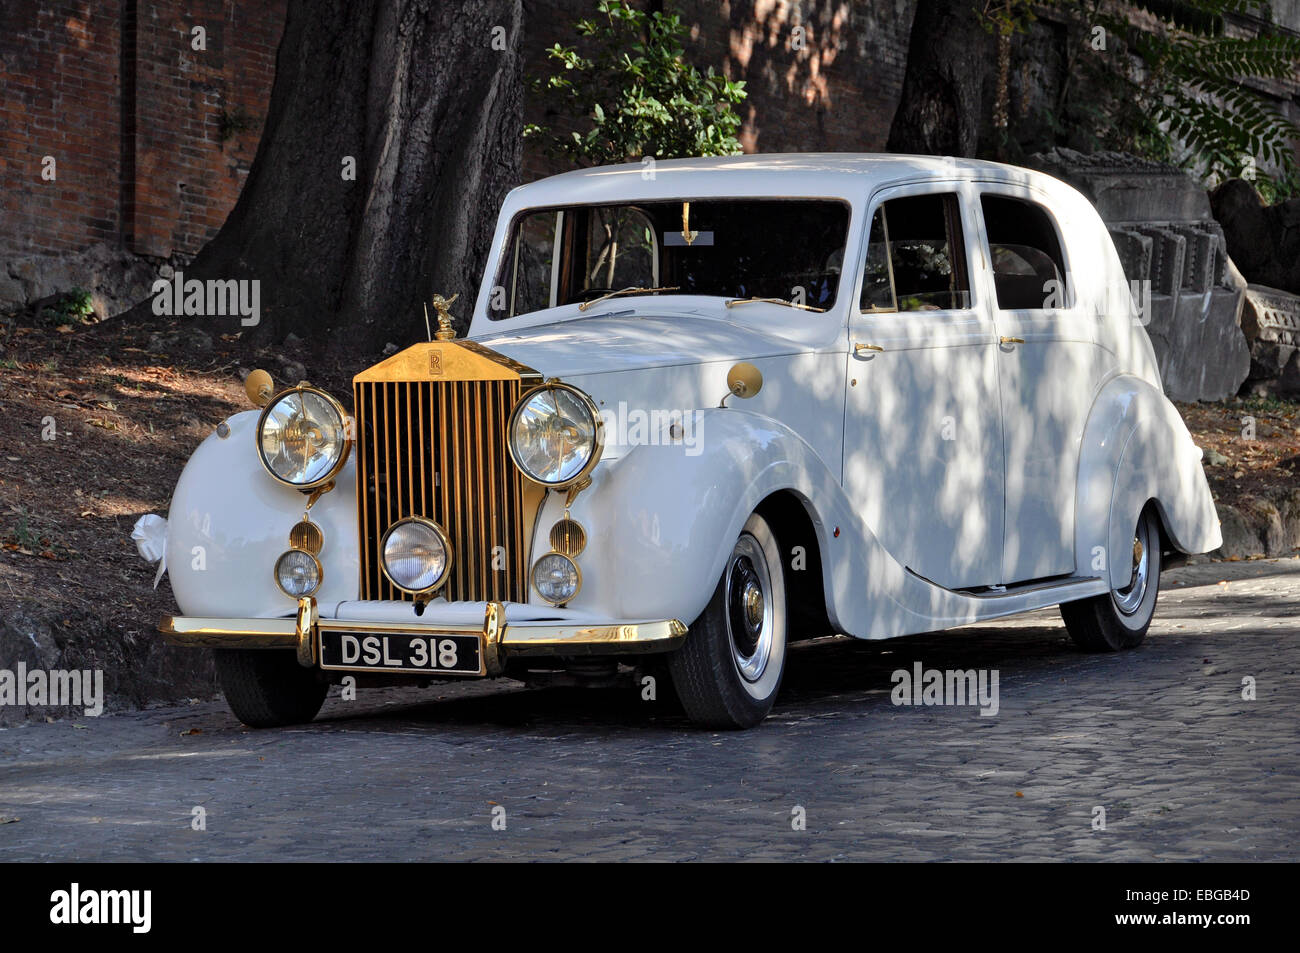 Vintage Rolls Royce Silver Wraith Pullman Limousine Built From 1946 Stock Photo Alamy